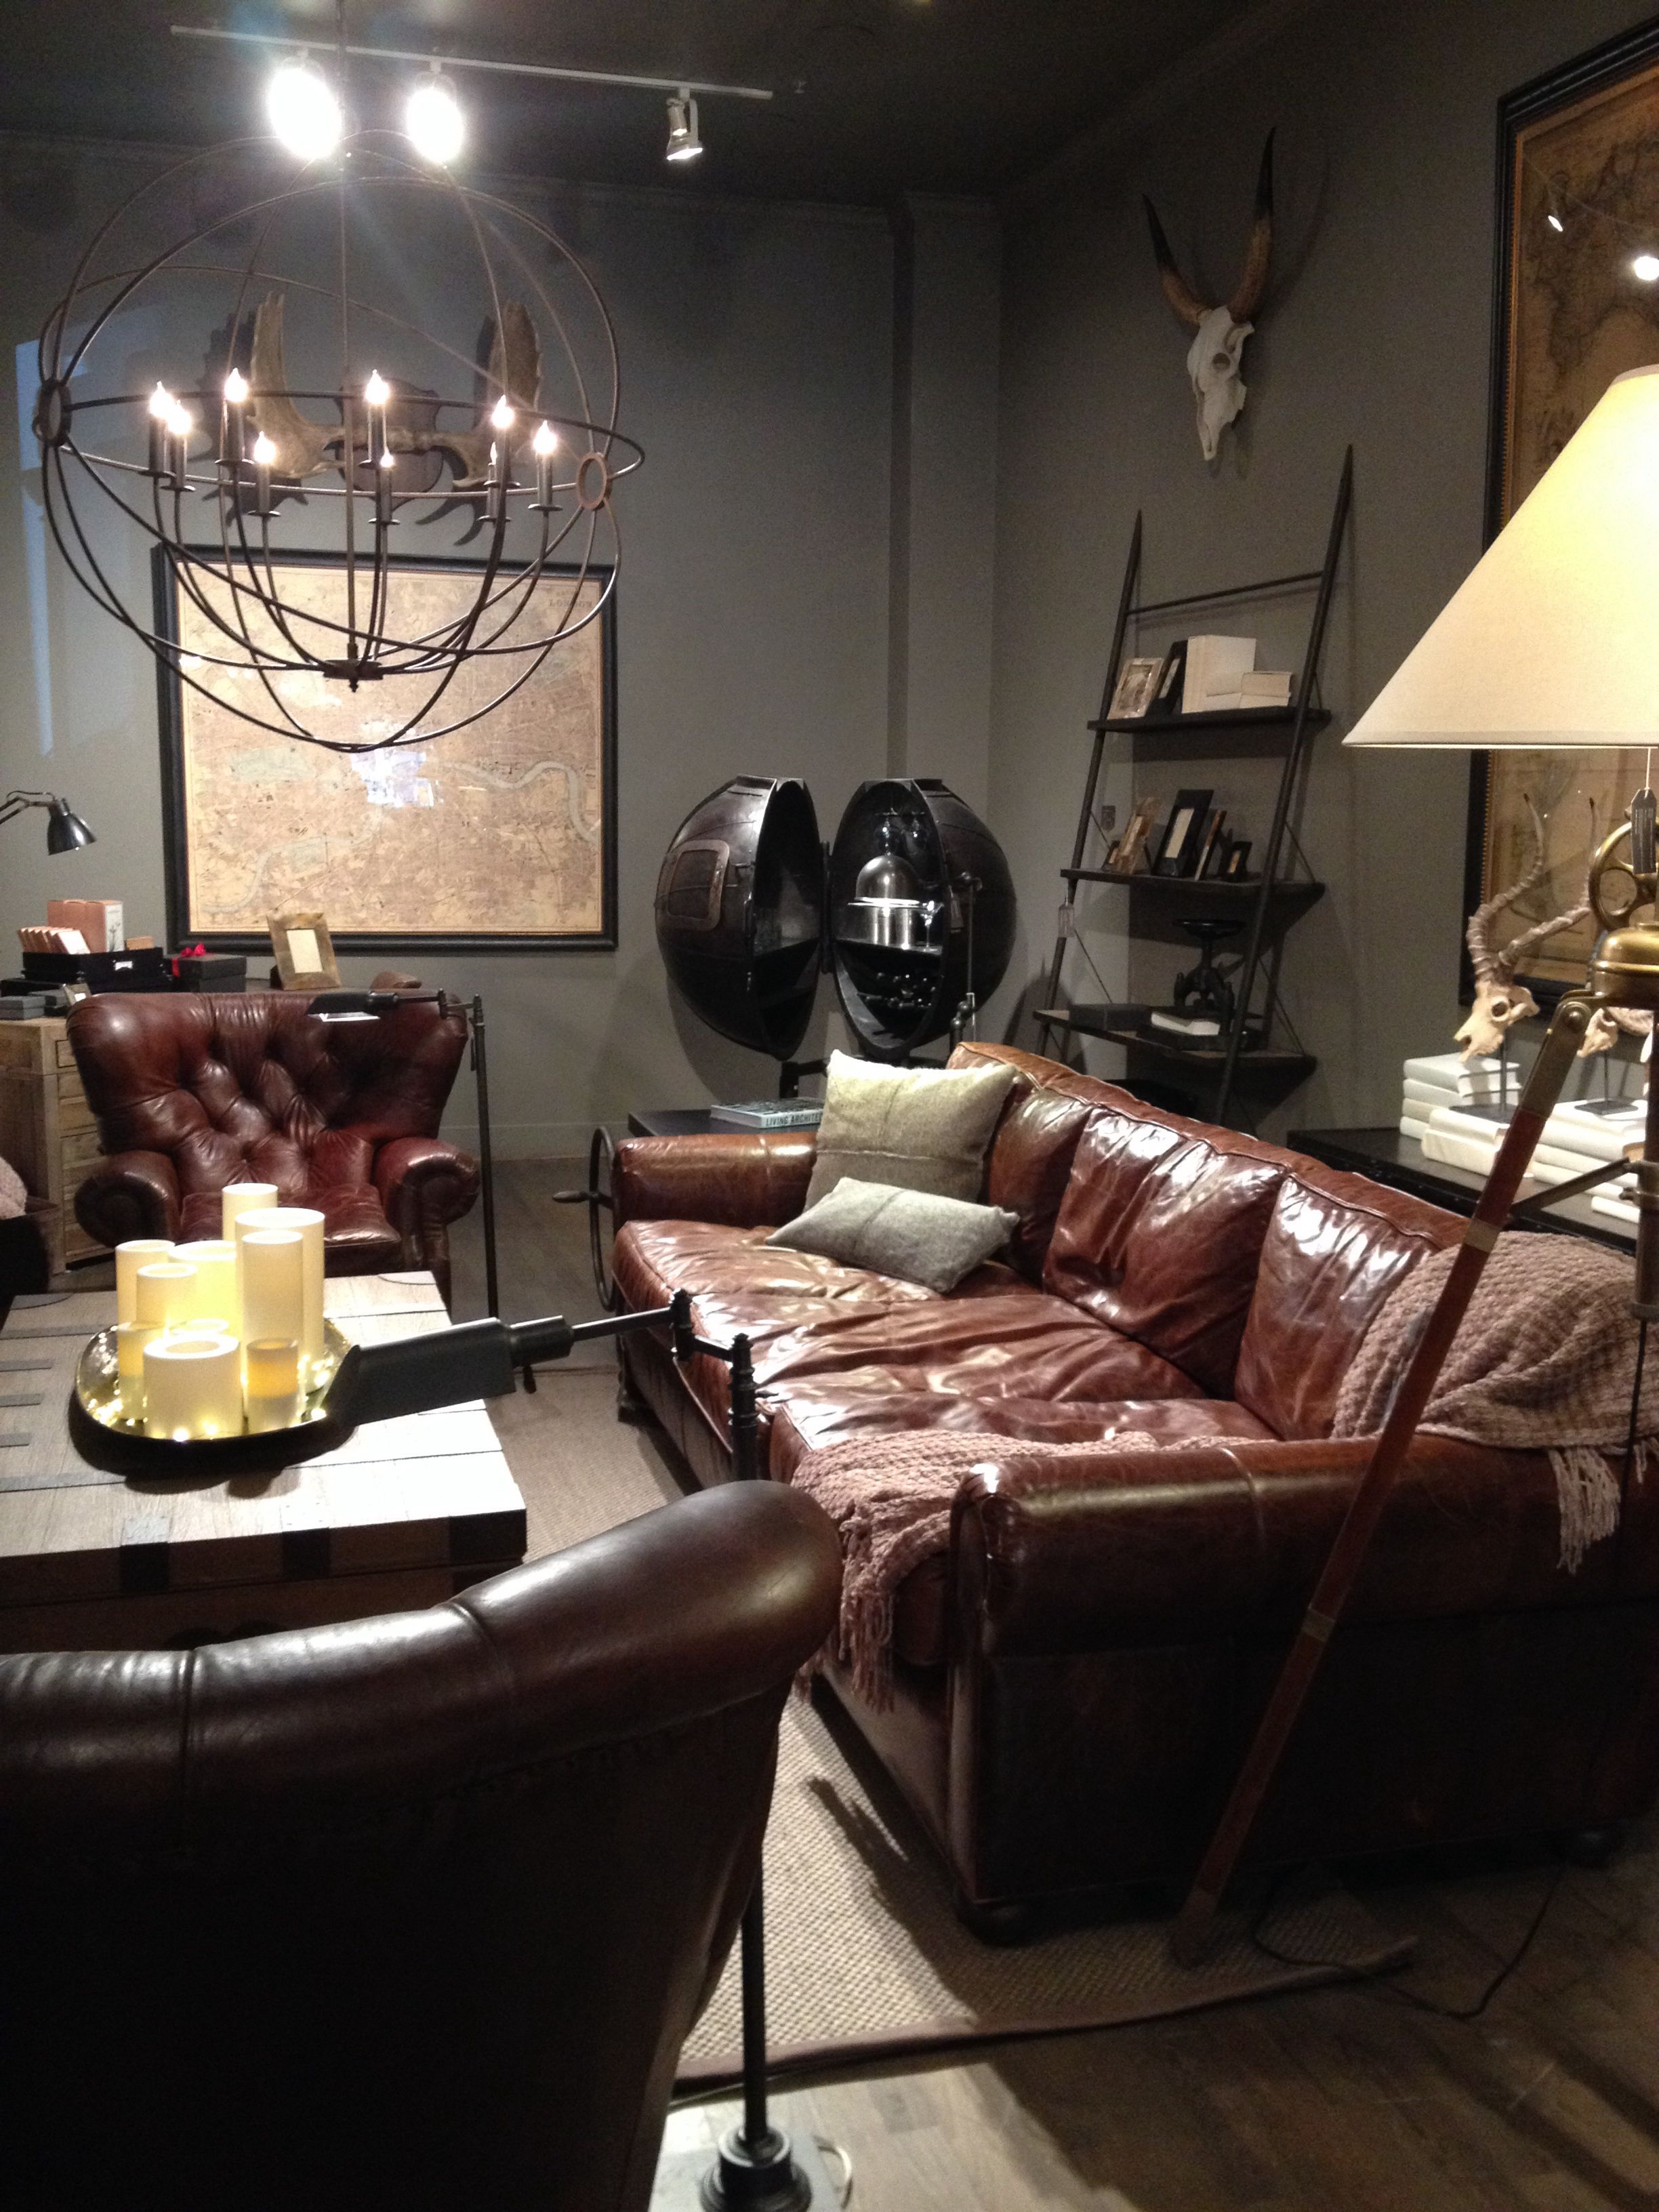 Chesterfield Wohnzimmer Restoration Hardware Brown Leather Sofa Over Sized Wall